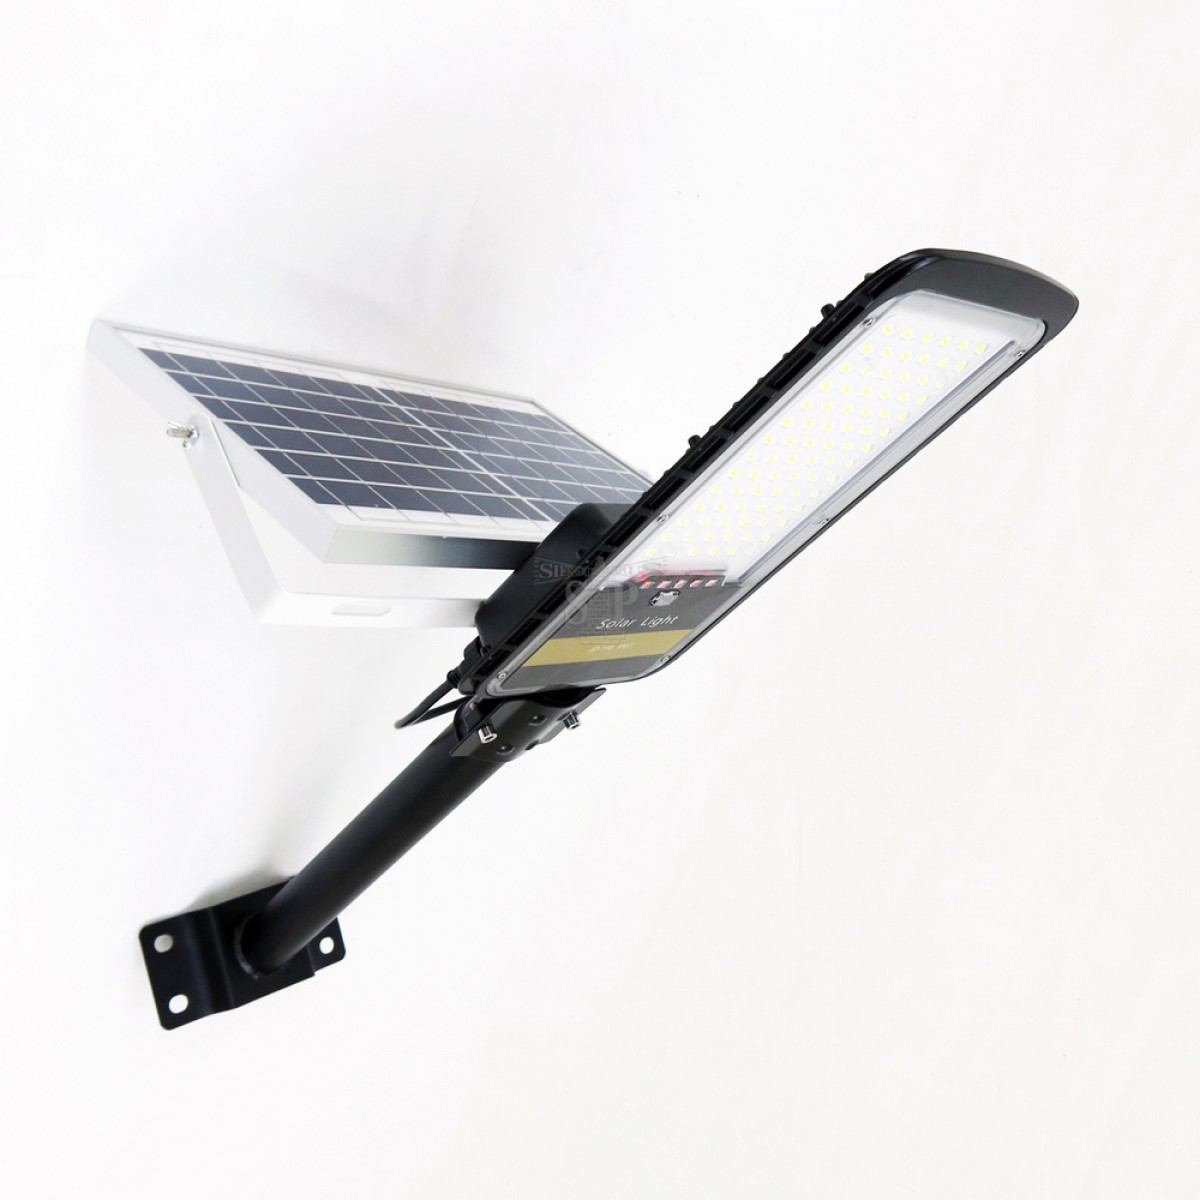 E Ten Jd 198 80w Smd Solar Led Street Light Black C W Solar Panel